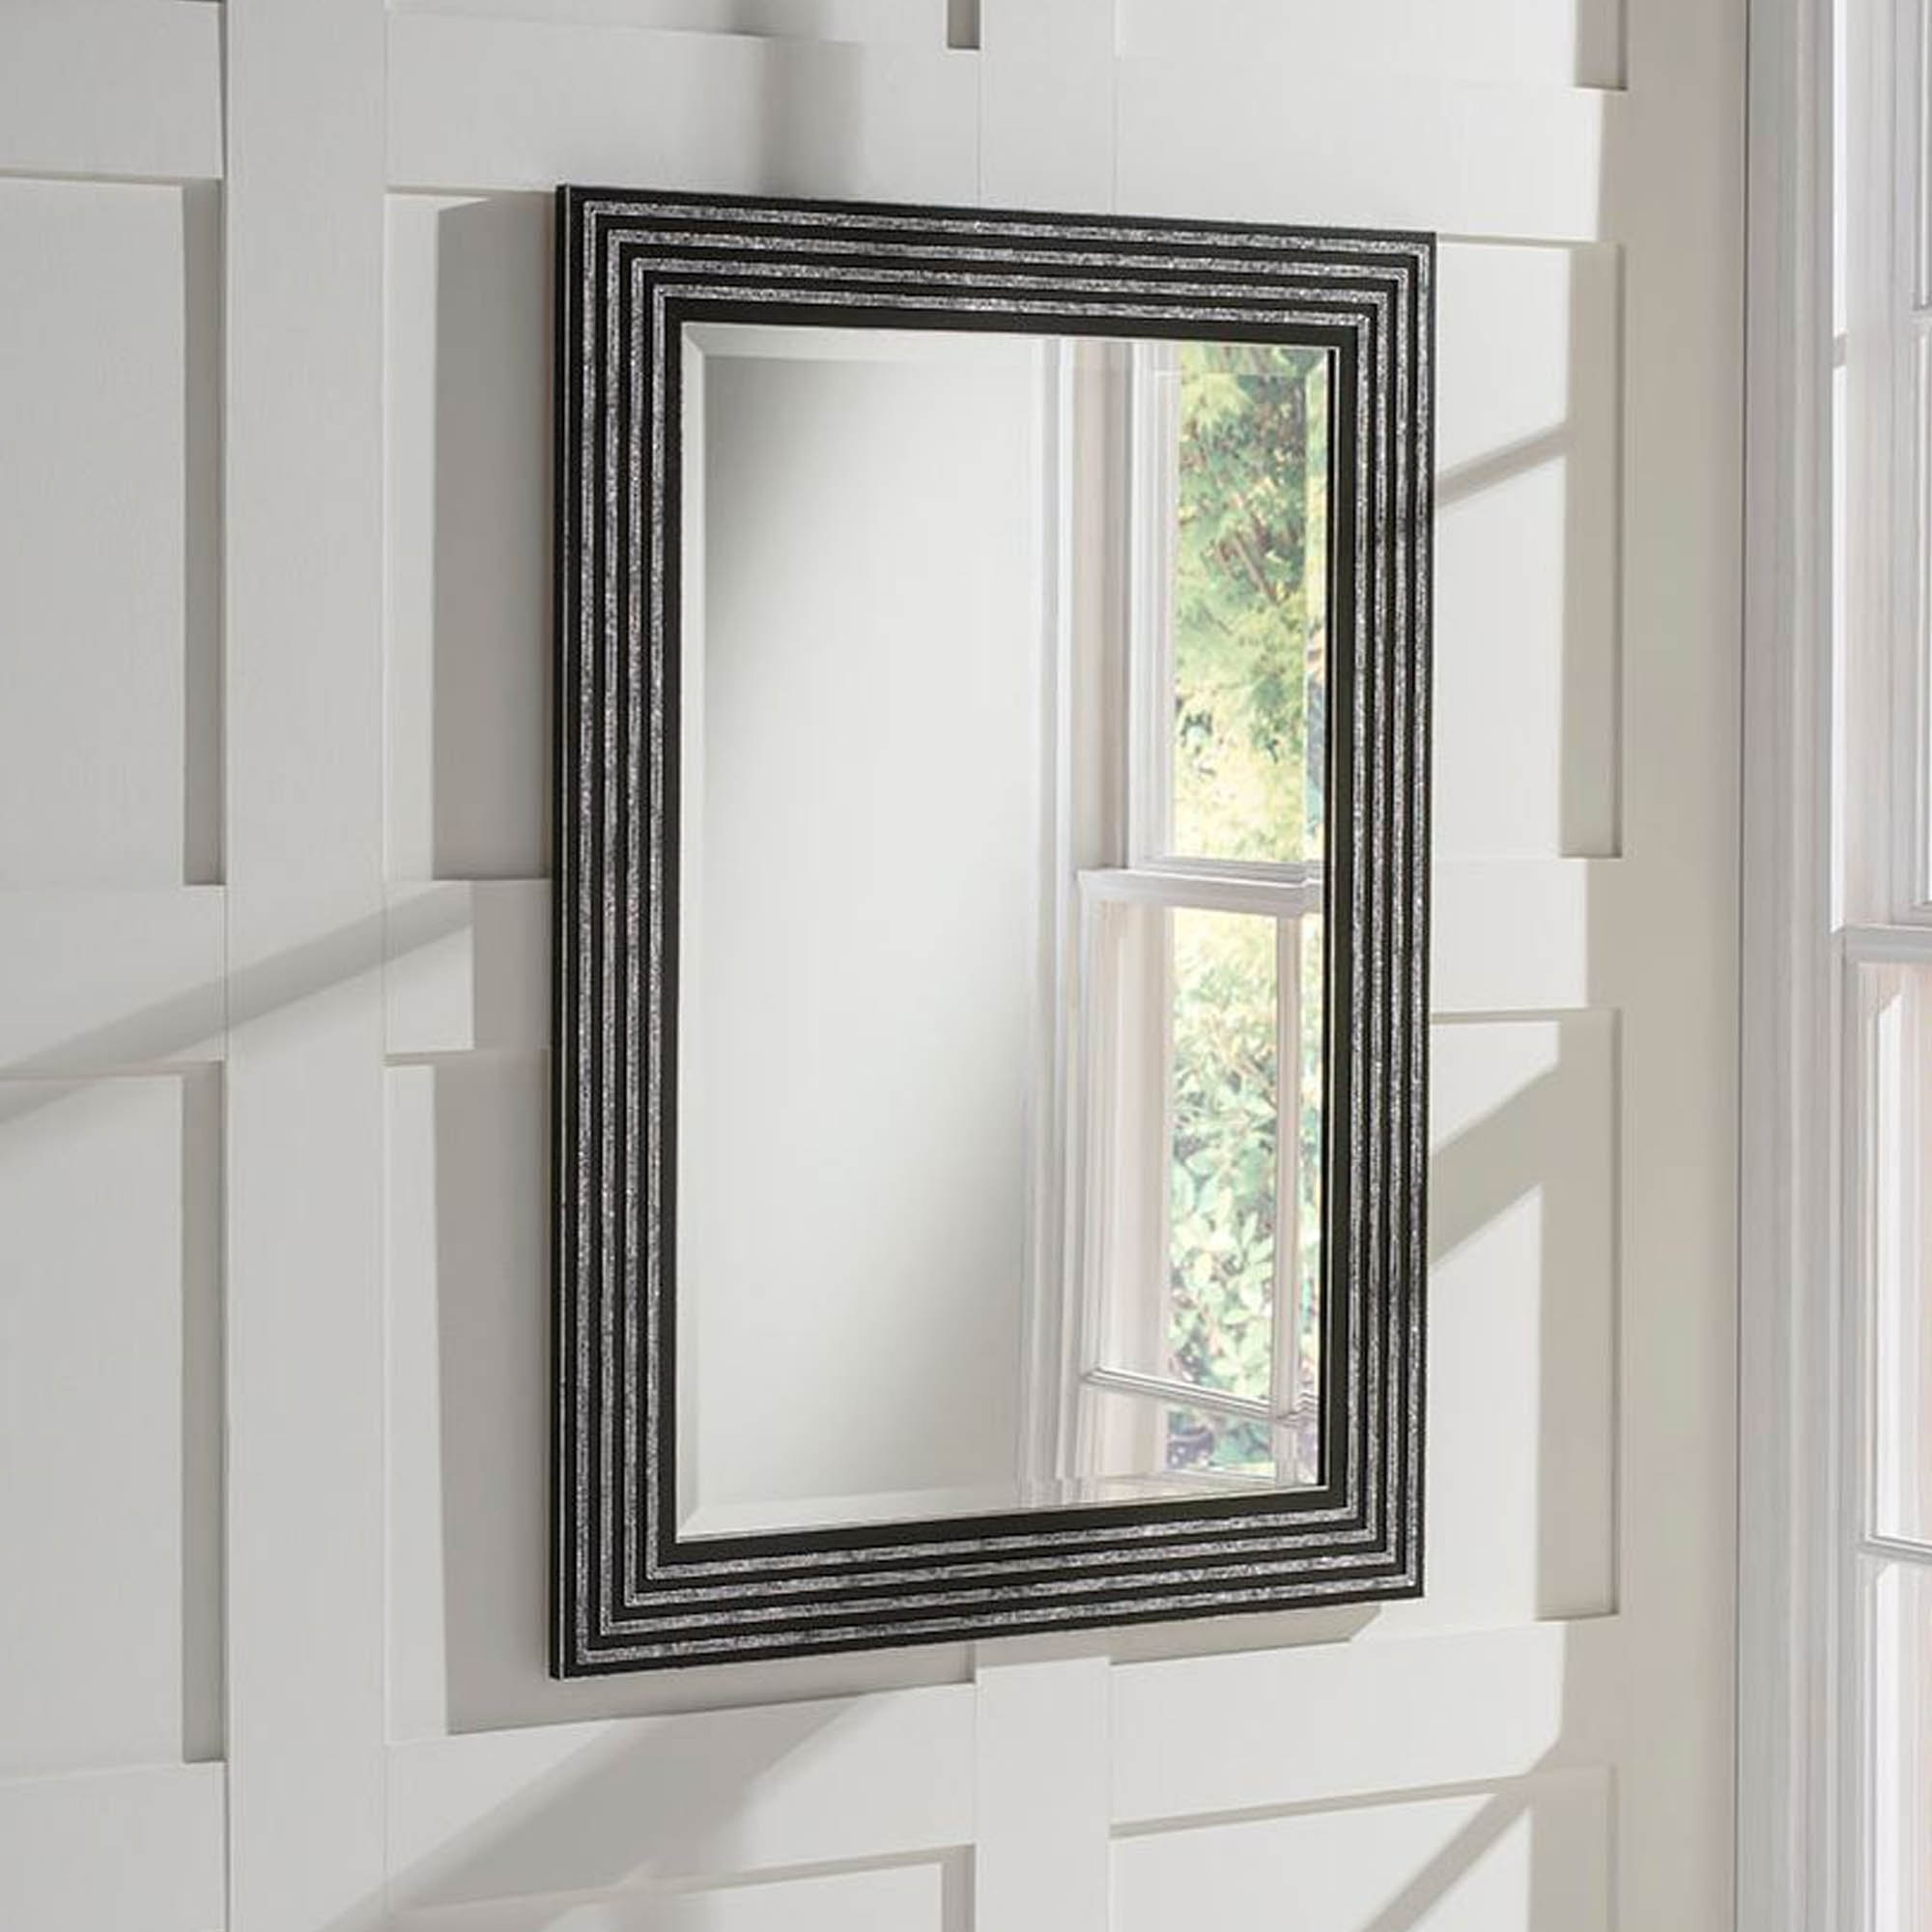 Widely Used Decorative Black Wall Mirrors Regarding Black And Silver Decorative Wall Mirror (View 20 of 20)